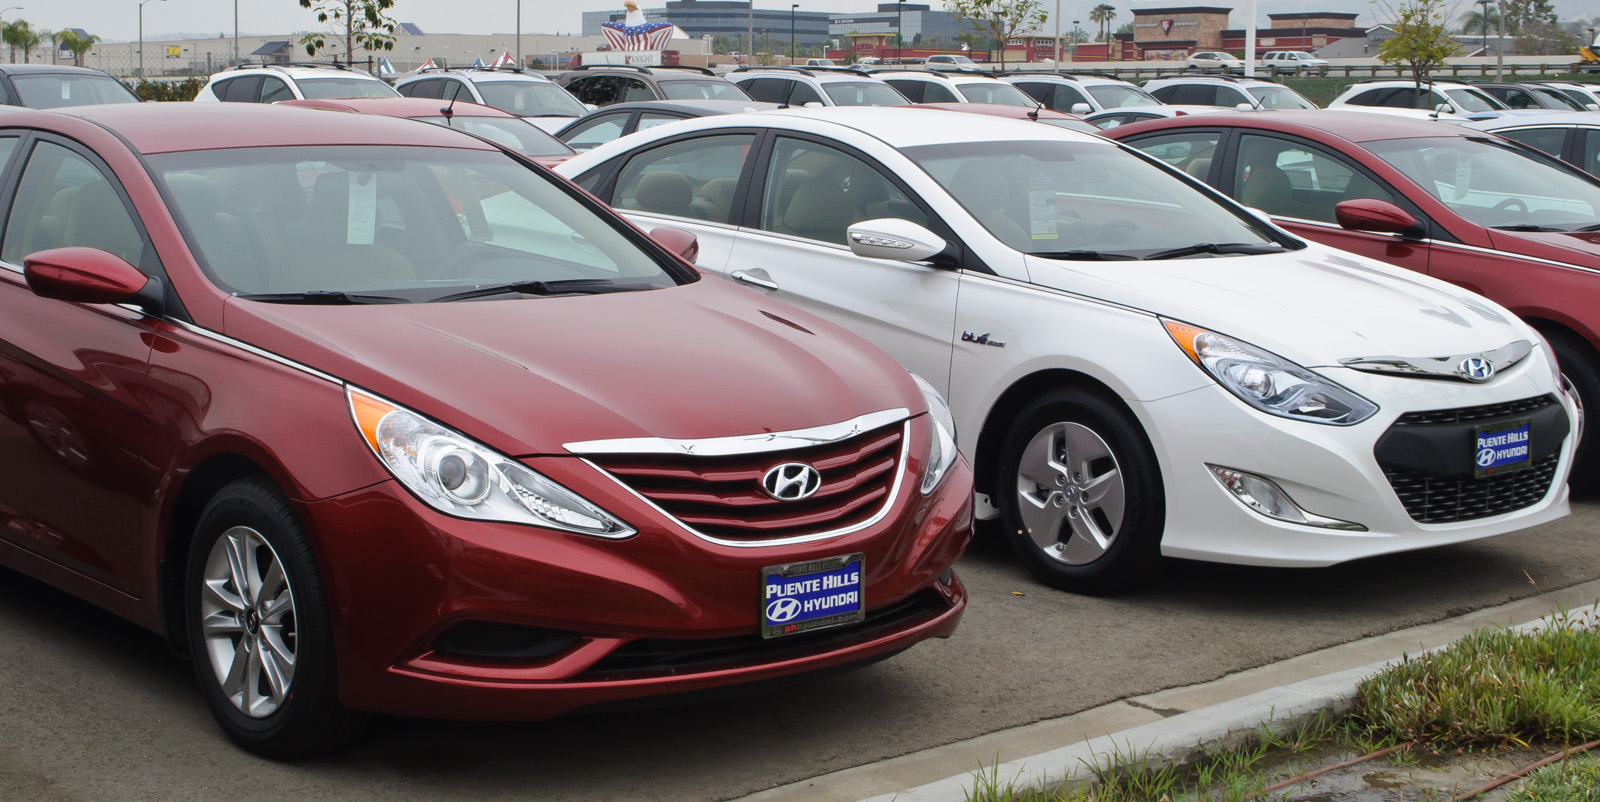 Hyundai Sonata Used Cars For Sale